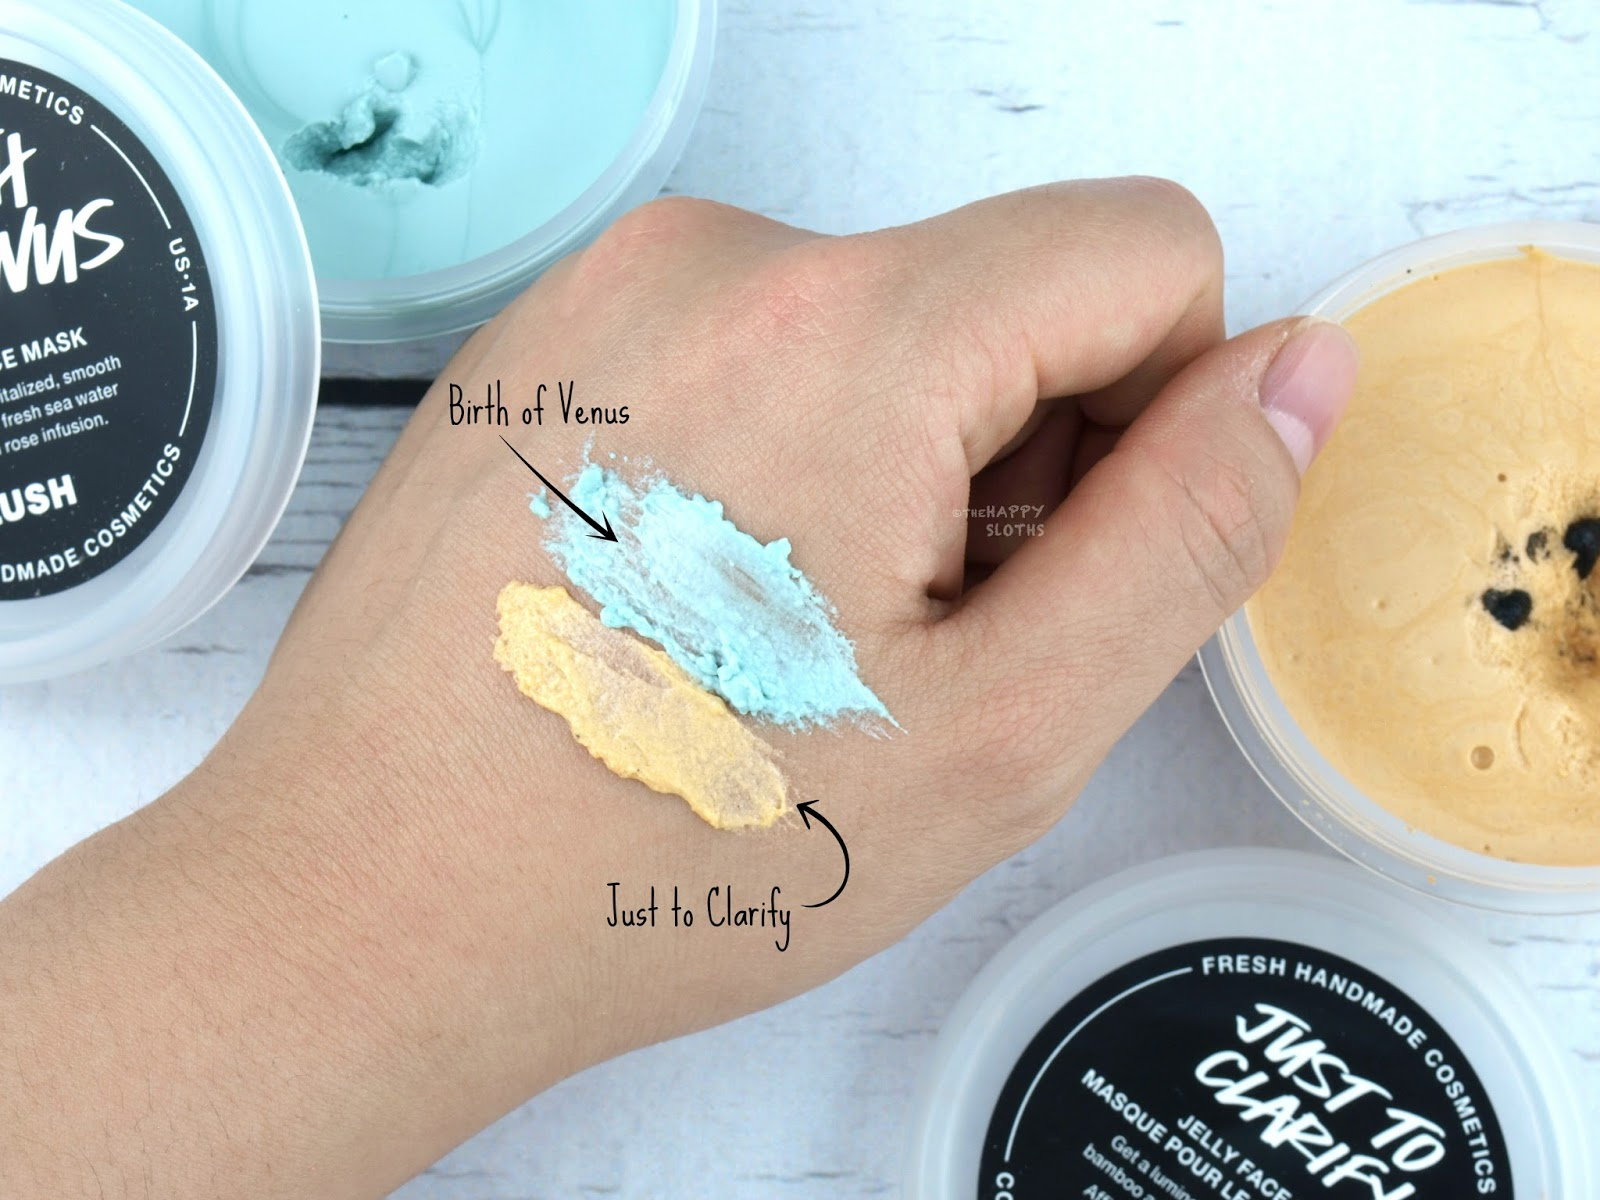 Lush Jelly Face Mask Review | Just to Clarify & Birth of Venus